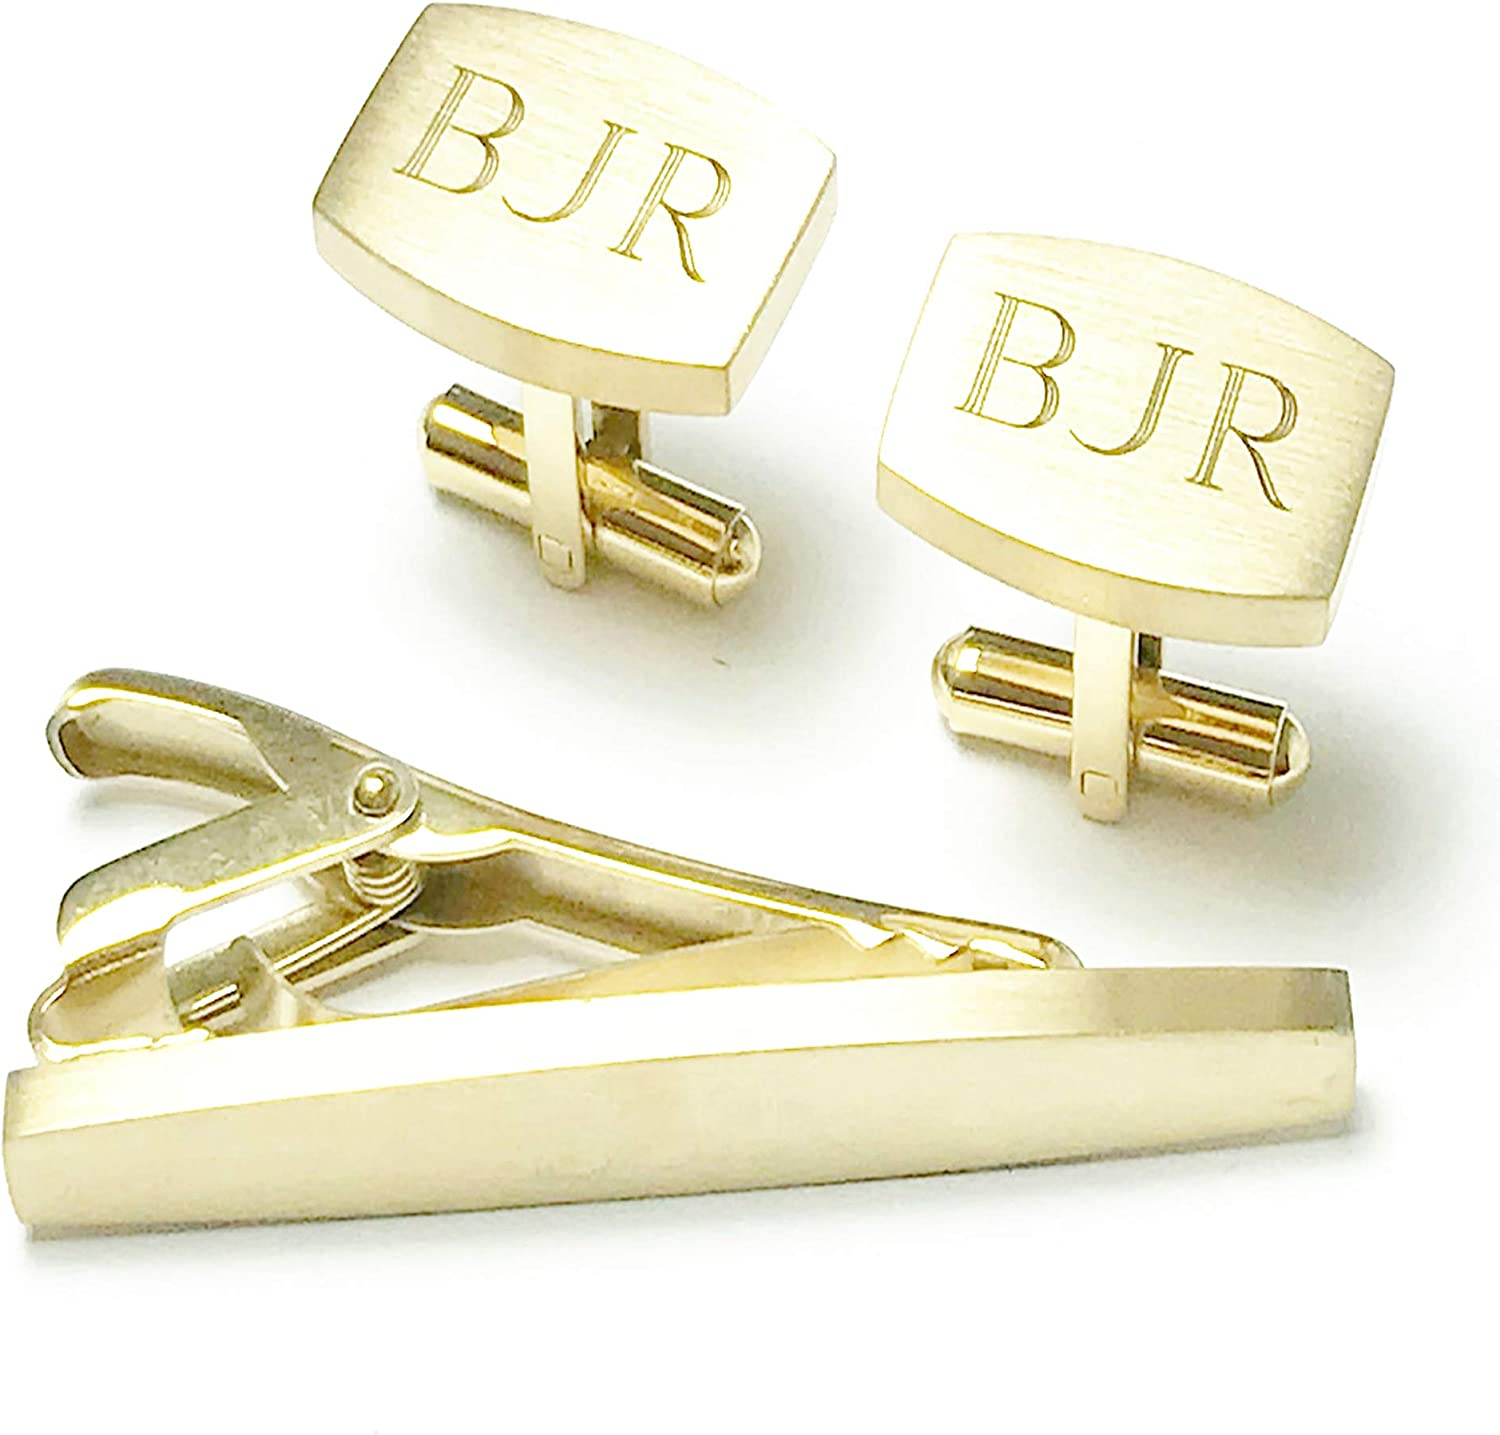 Personalized Cufflinks & Tie Clip Set for Men High Polished Gold Plated Stainless Steel Custom From USA